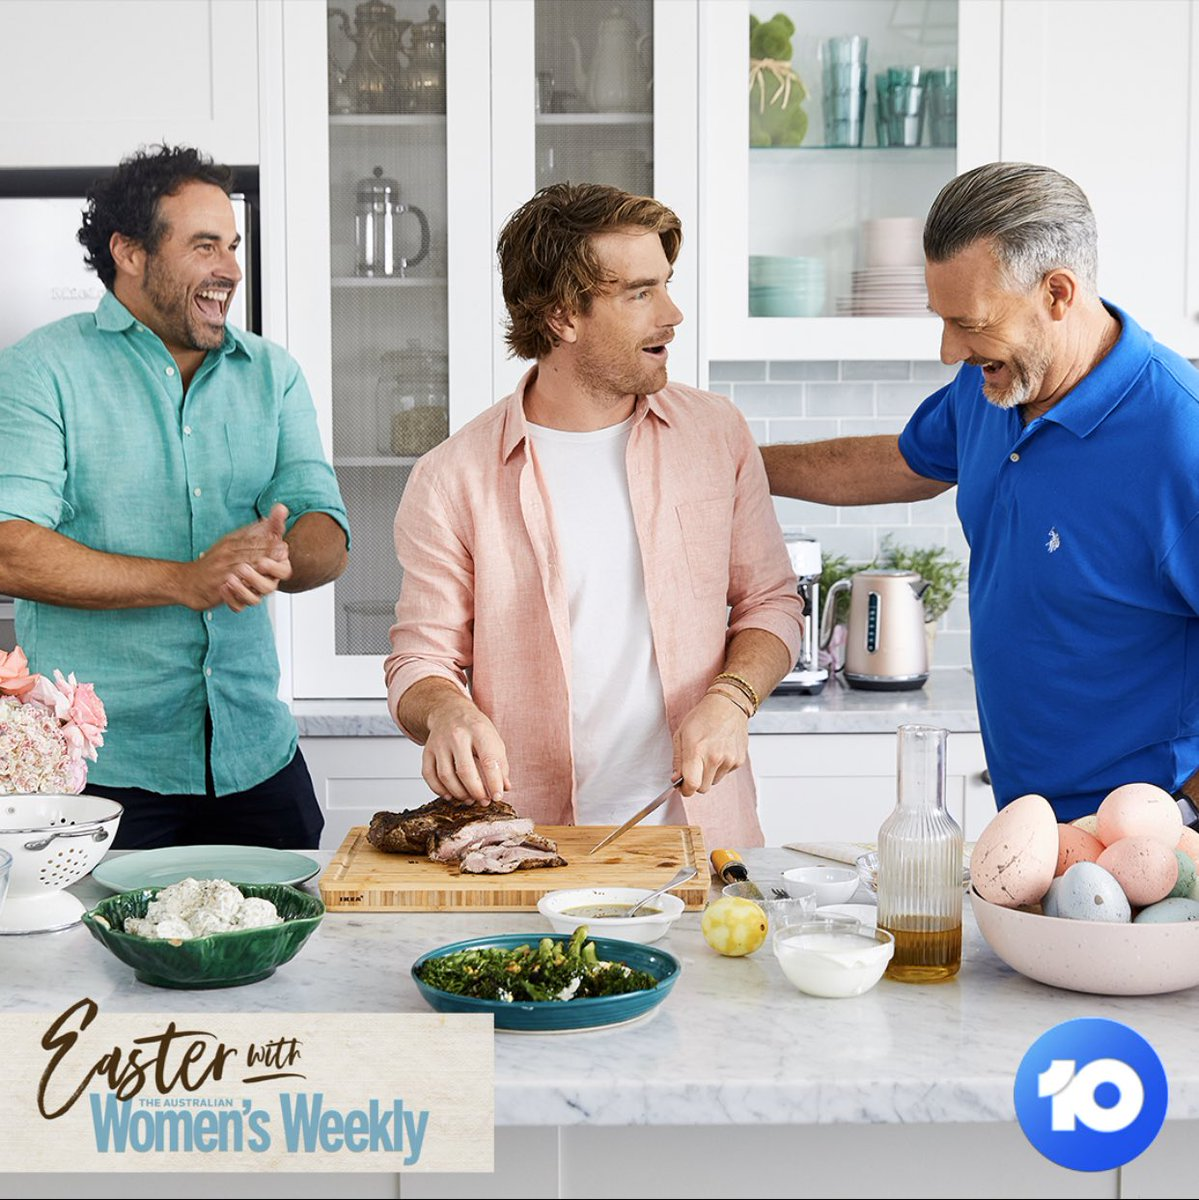 This is what happens when A MASTERBUILDER A MASTERCHEF AND A MAESTRECHEF get together in a @WomensWeeklyMag @Channel10AU this Friday at 7,30  .. lifestyle WIGGLES  @hayden_quinn @TheCrazyBull @Baz_DuBois  Where is SIMON says ???pic.twitter.com/egfF1YRniy